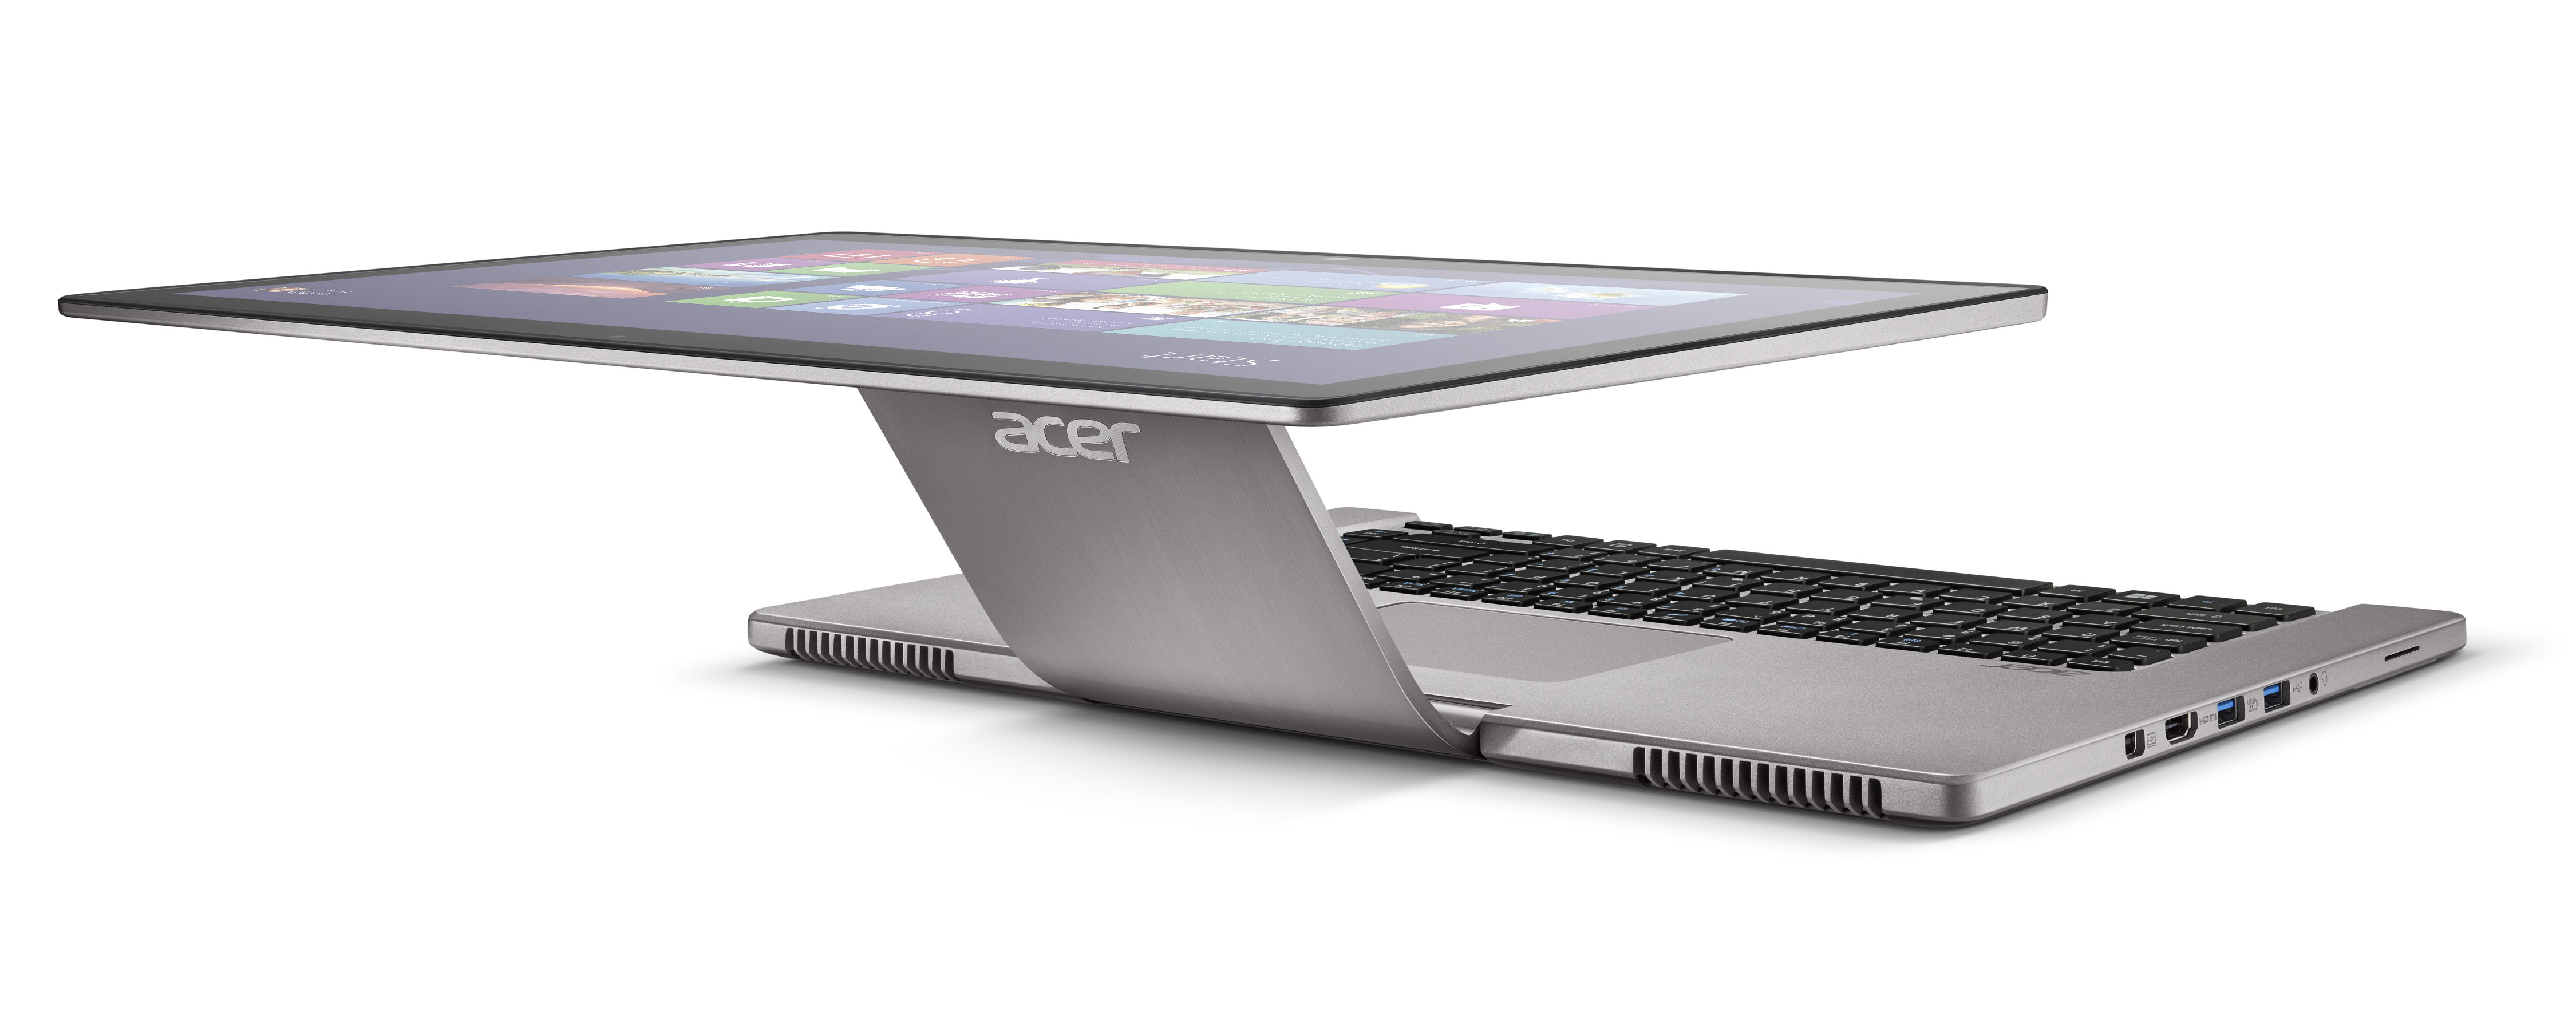 acer unveils aspire r7 windows 8 laptop all in one pc hybrid bonnie cha product news. Black Bedroom Furniture Sets. Home Design Ideas